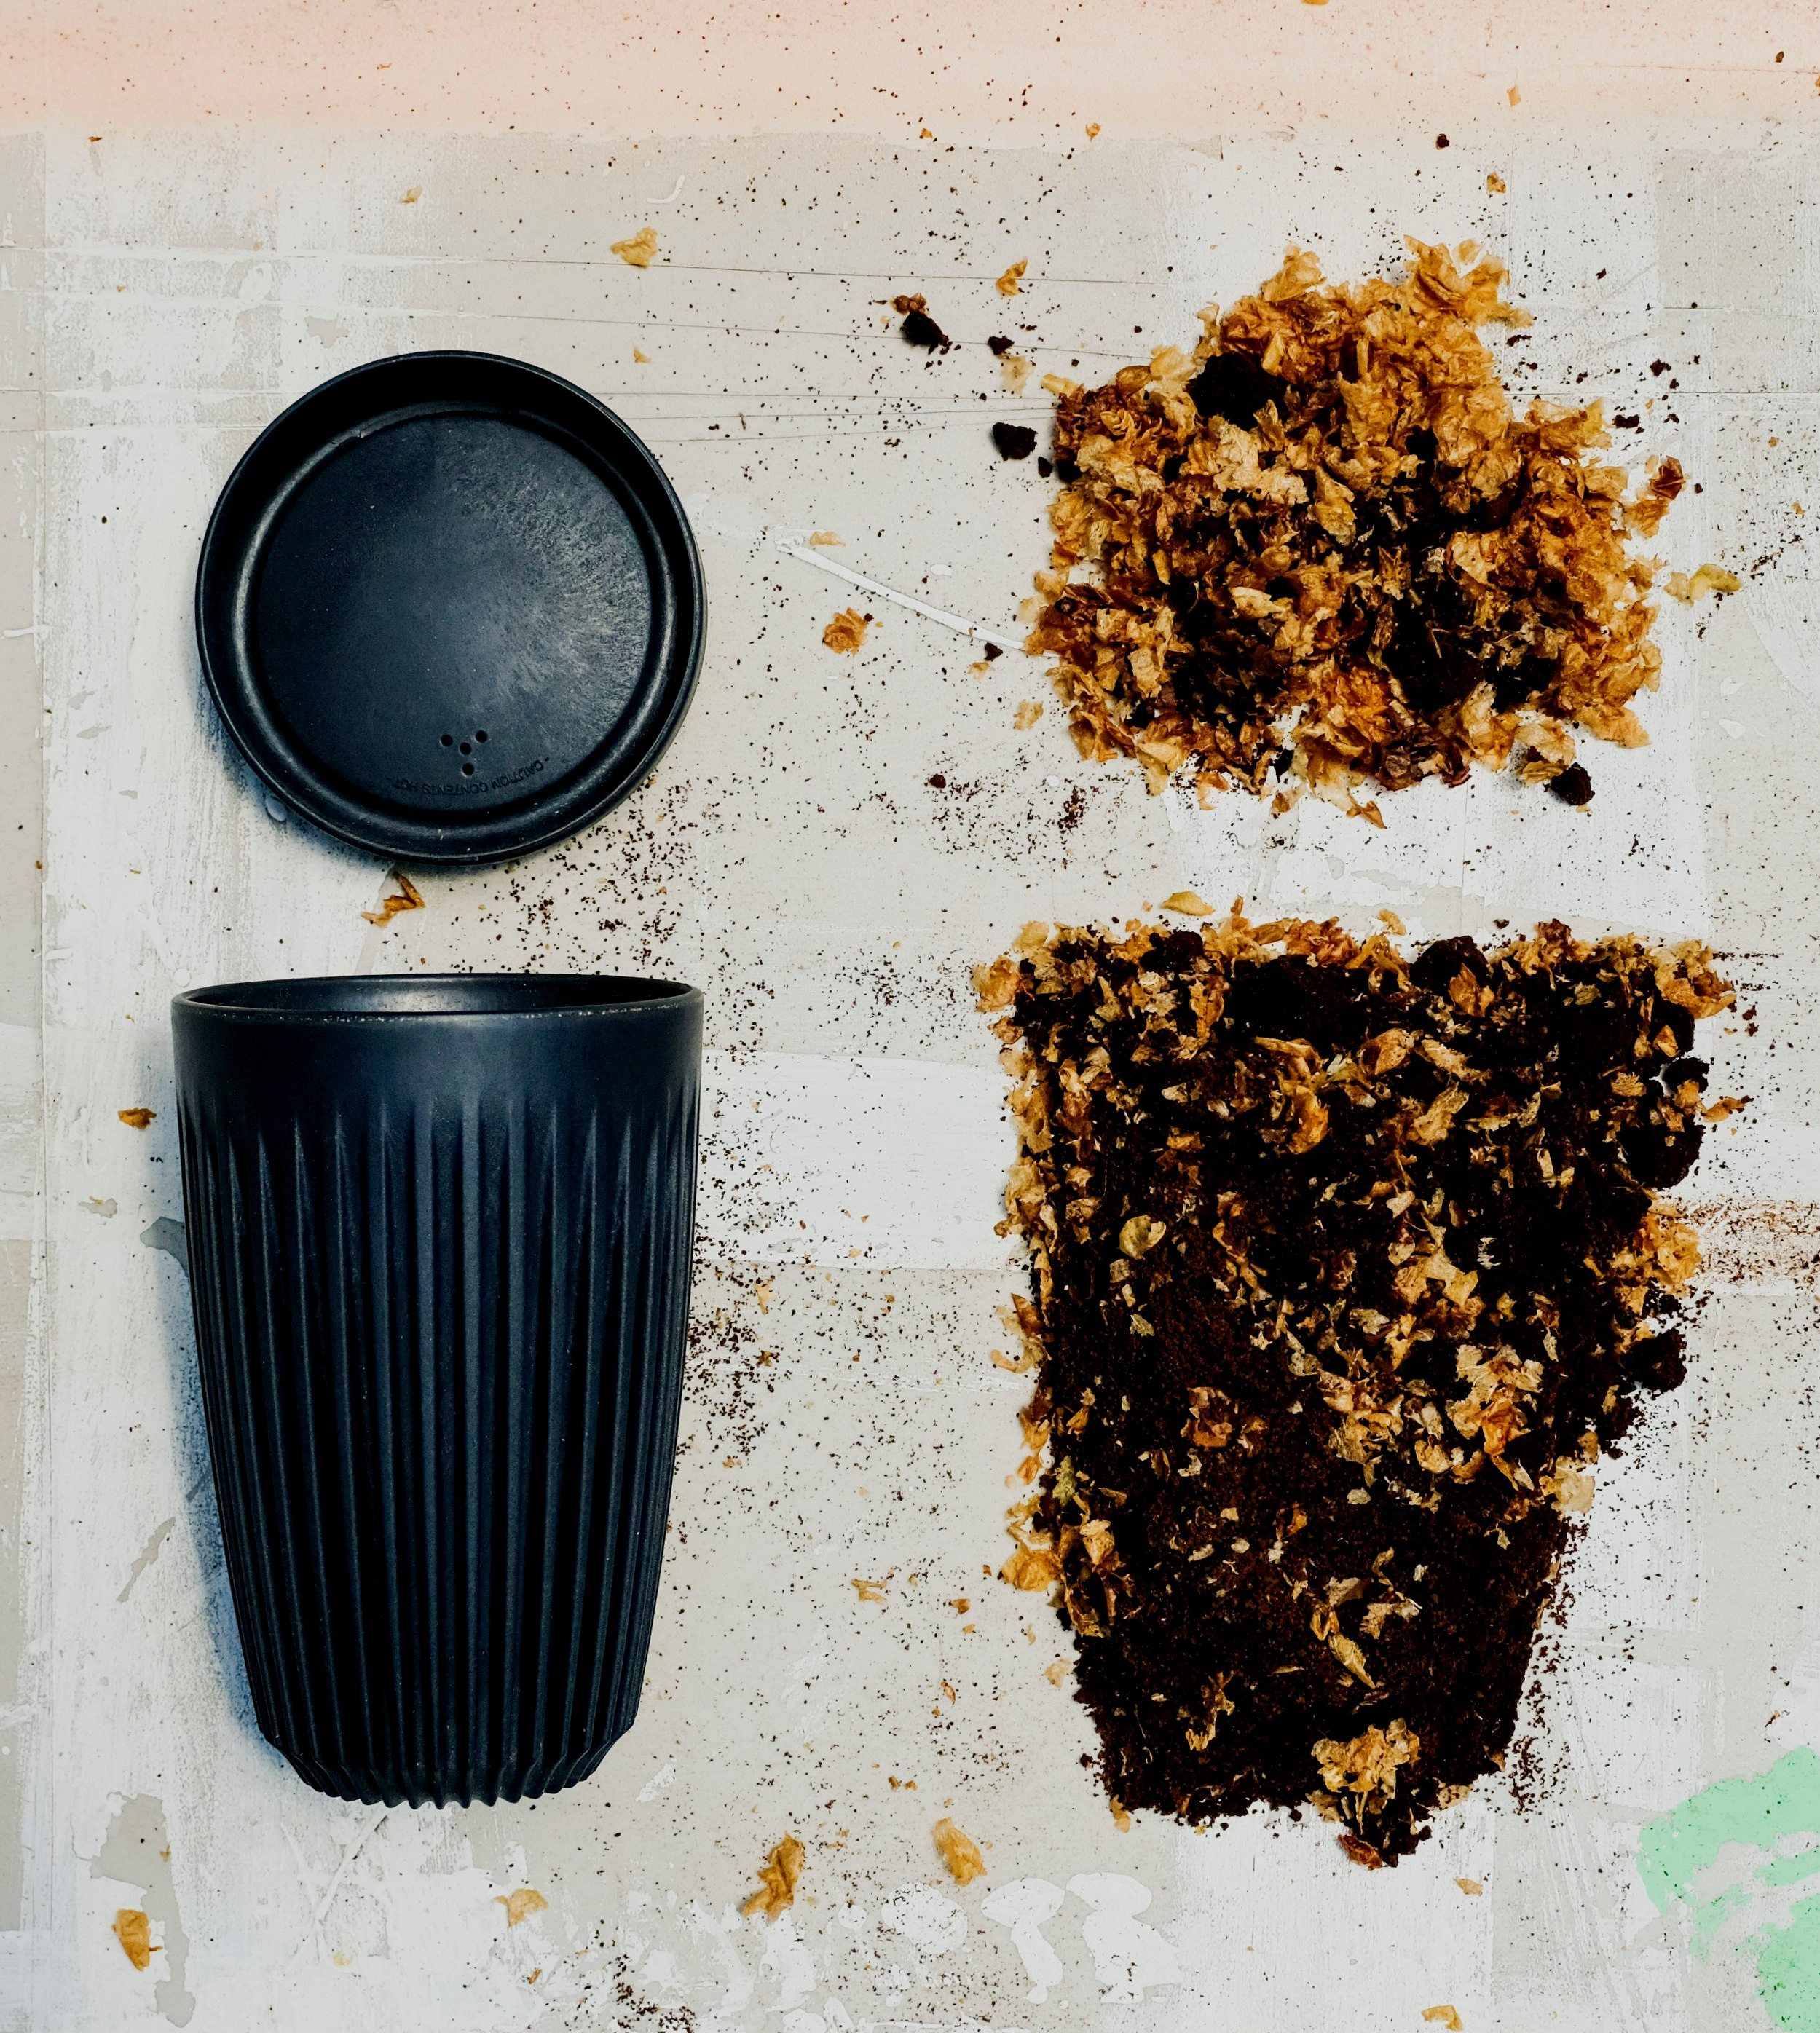 HuskeeSwap - While our single-use cups and lids are compostable, reducing the amount of waste going to landfills, reusable cups offer a still better option for waste reduction. Introducing the HuskeeSwap, which makes it as convenient as possible for you to reuse a to-go cup.